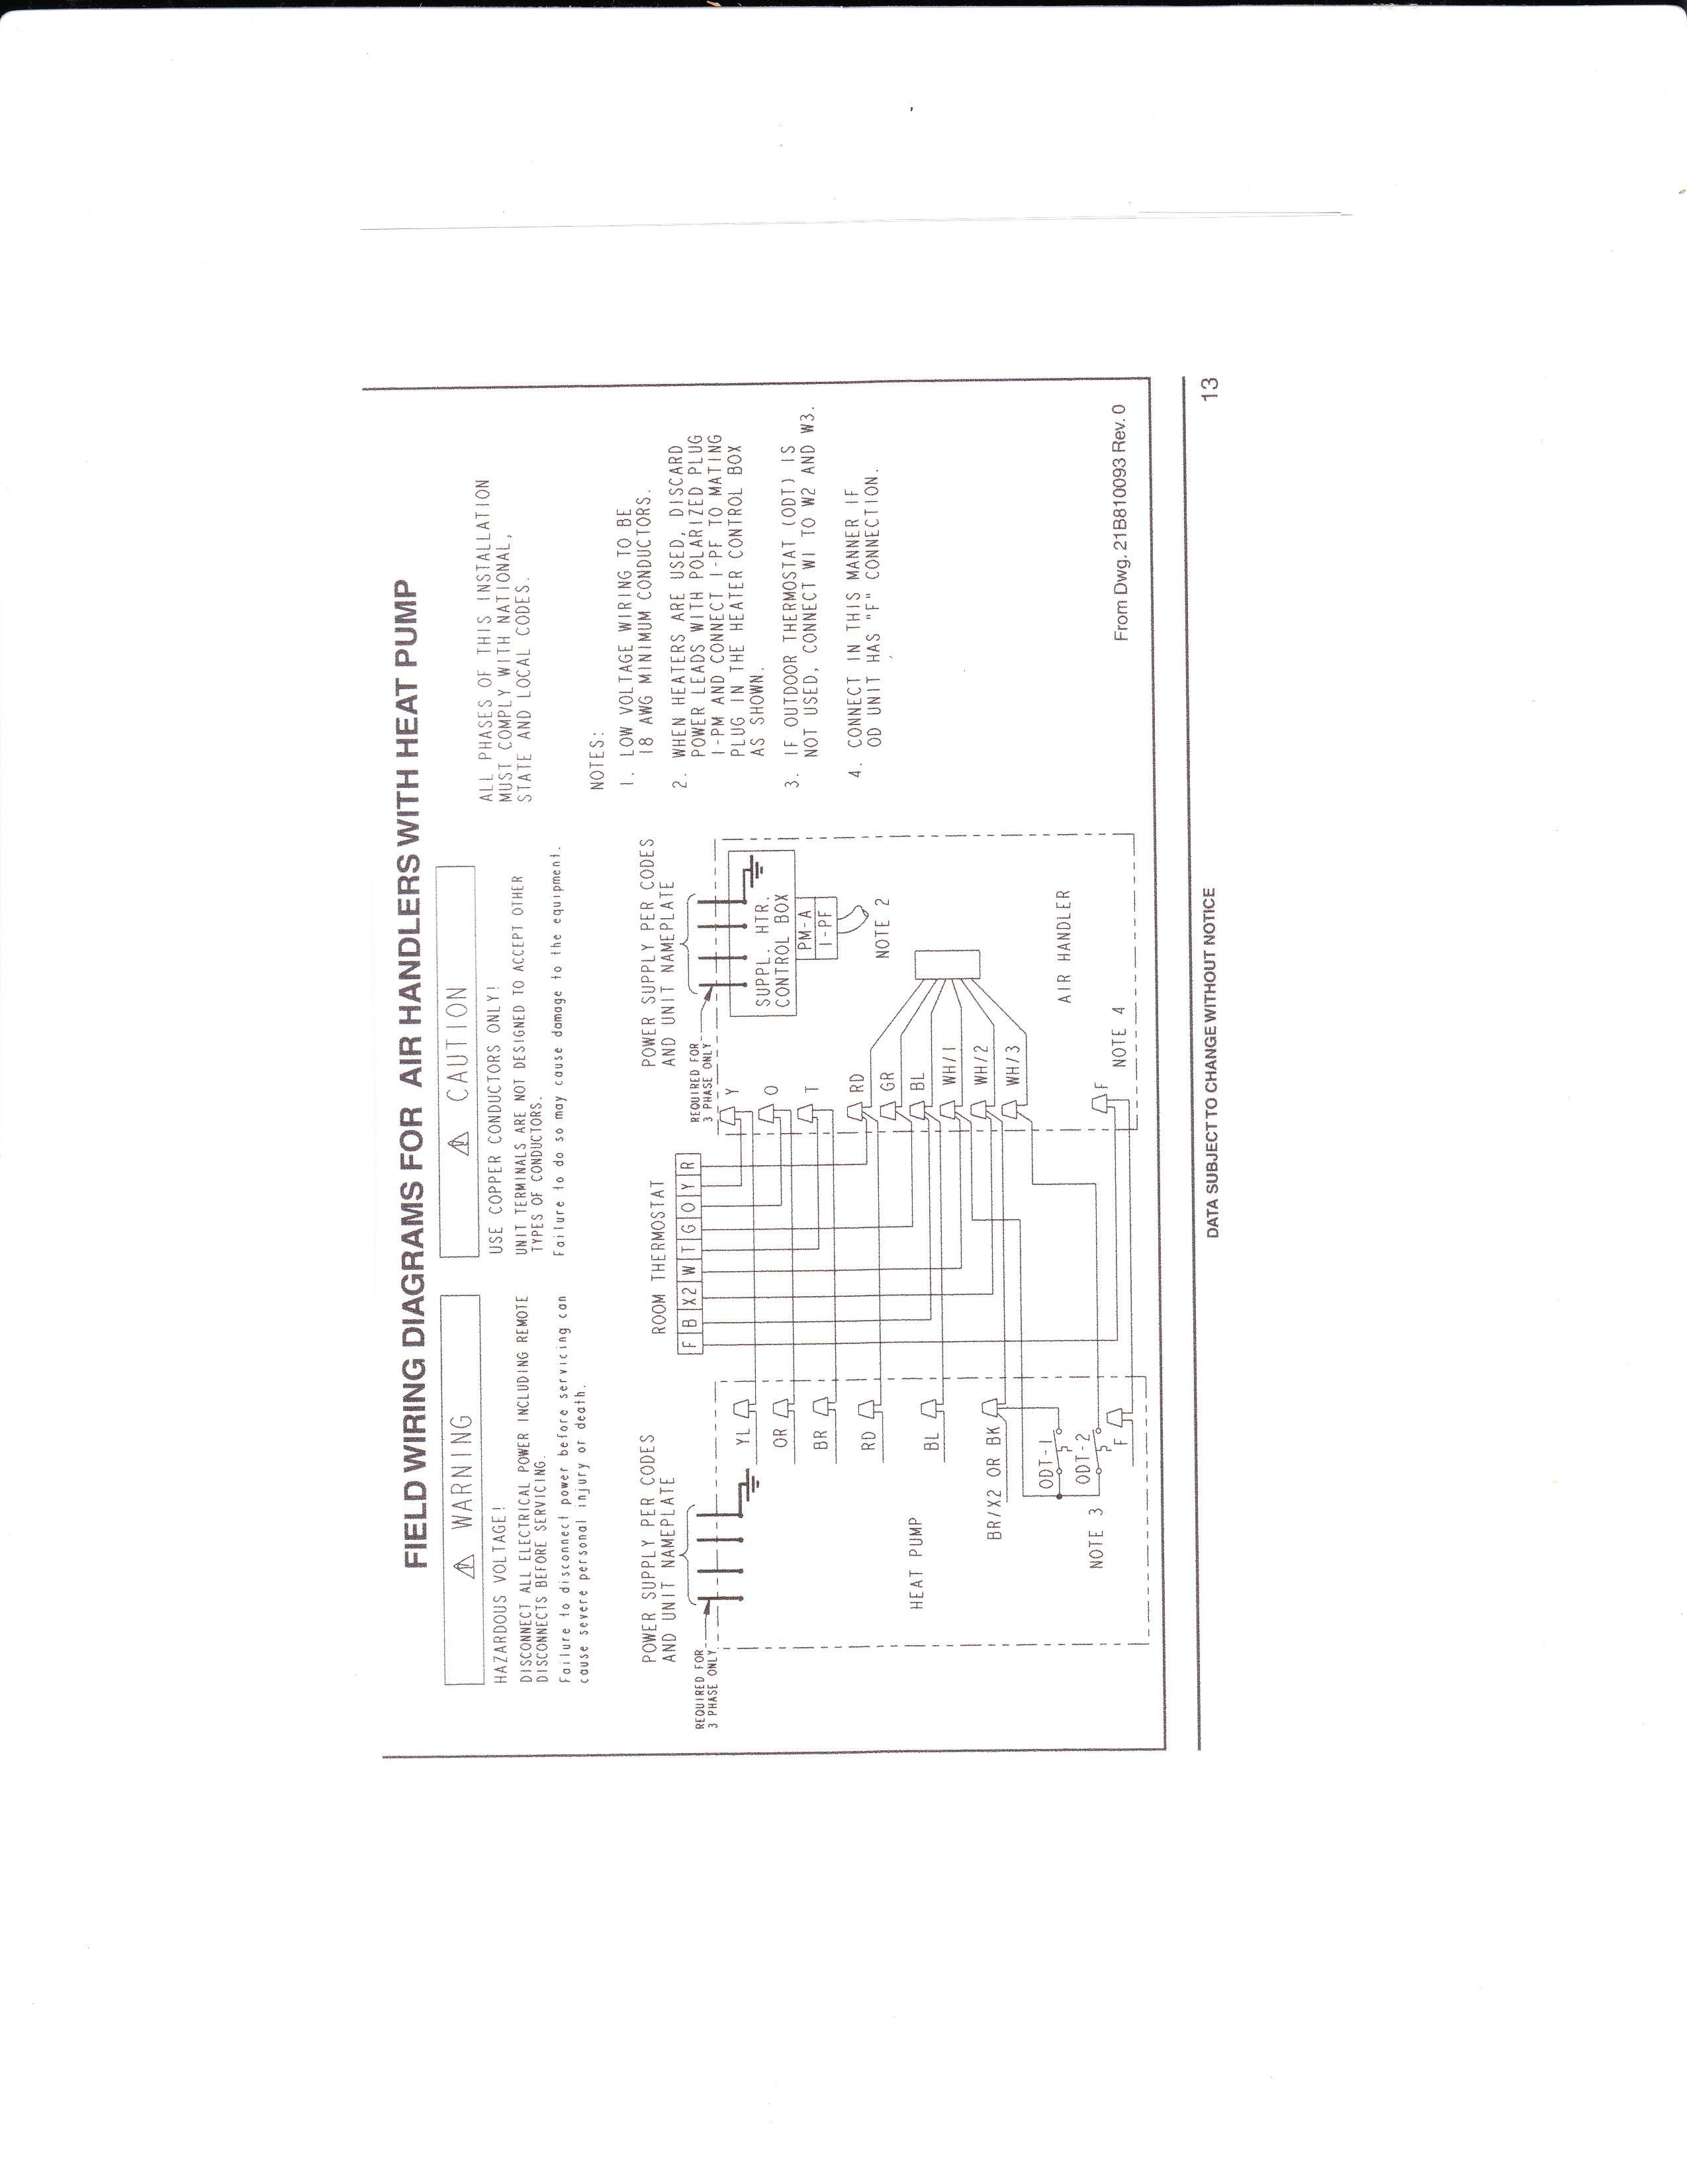 Weathertron Thermostat Wiring Diagram Thermostat Wiring Baseboard Heater Electric Furnace